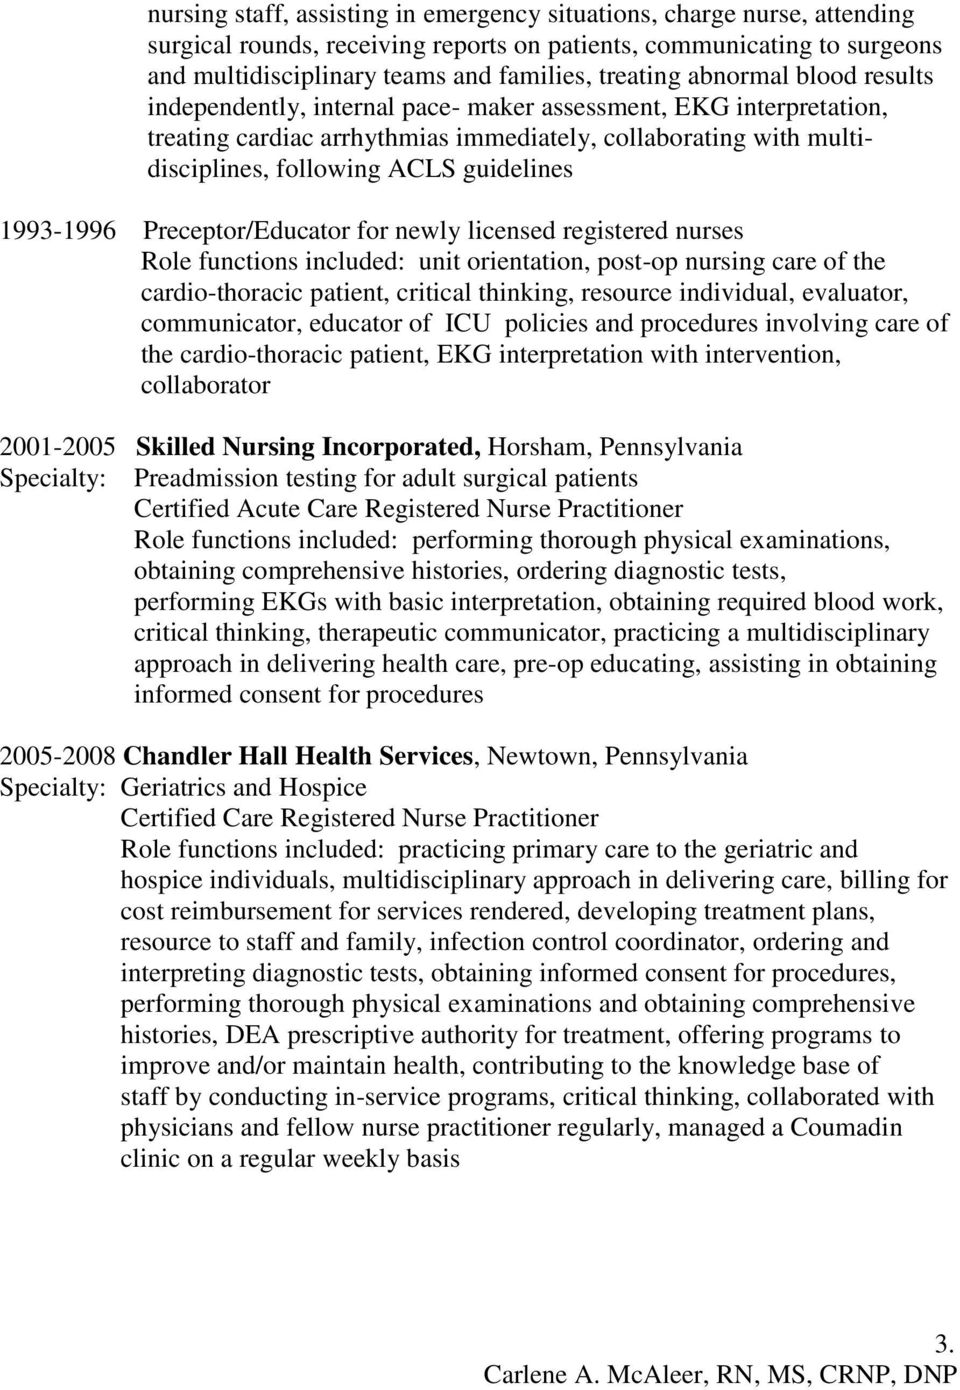 1993-1996 Preceptor/Educator for newly licensed registered nurses Role functions included: unit orientation, post-op nursing care of the cardio-thoracic patient, critical thinking, resource